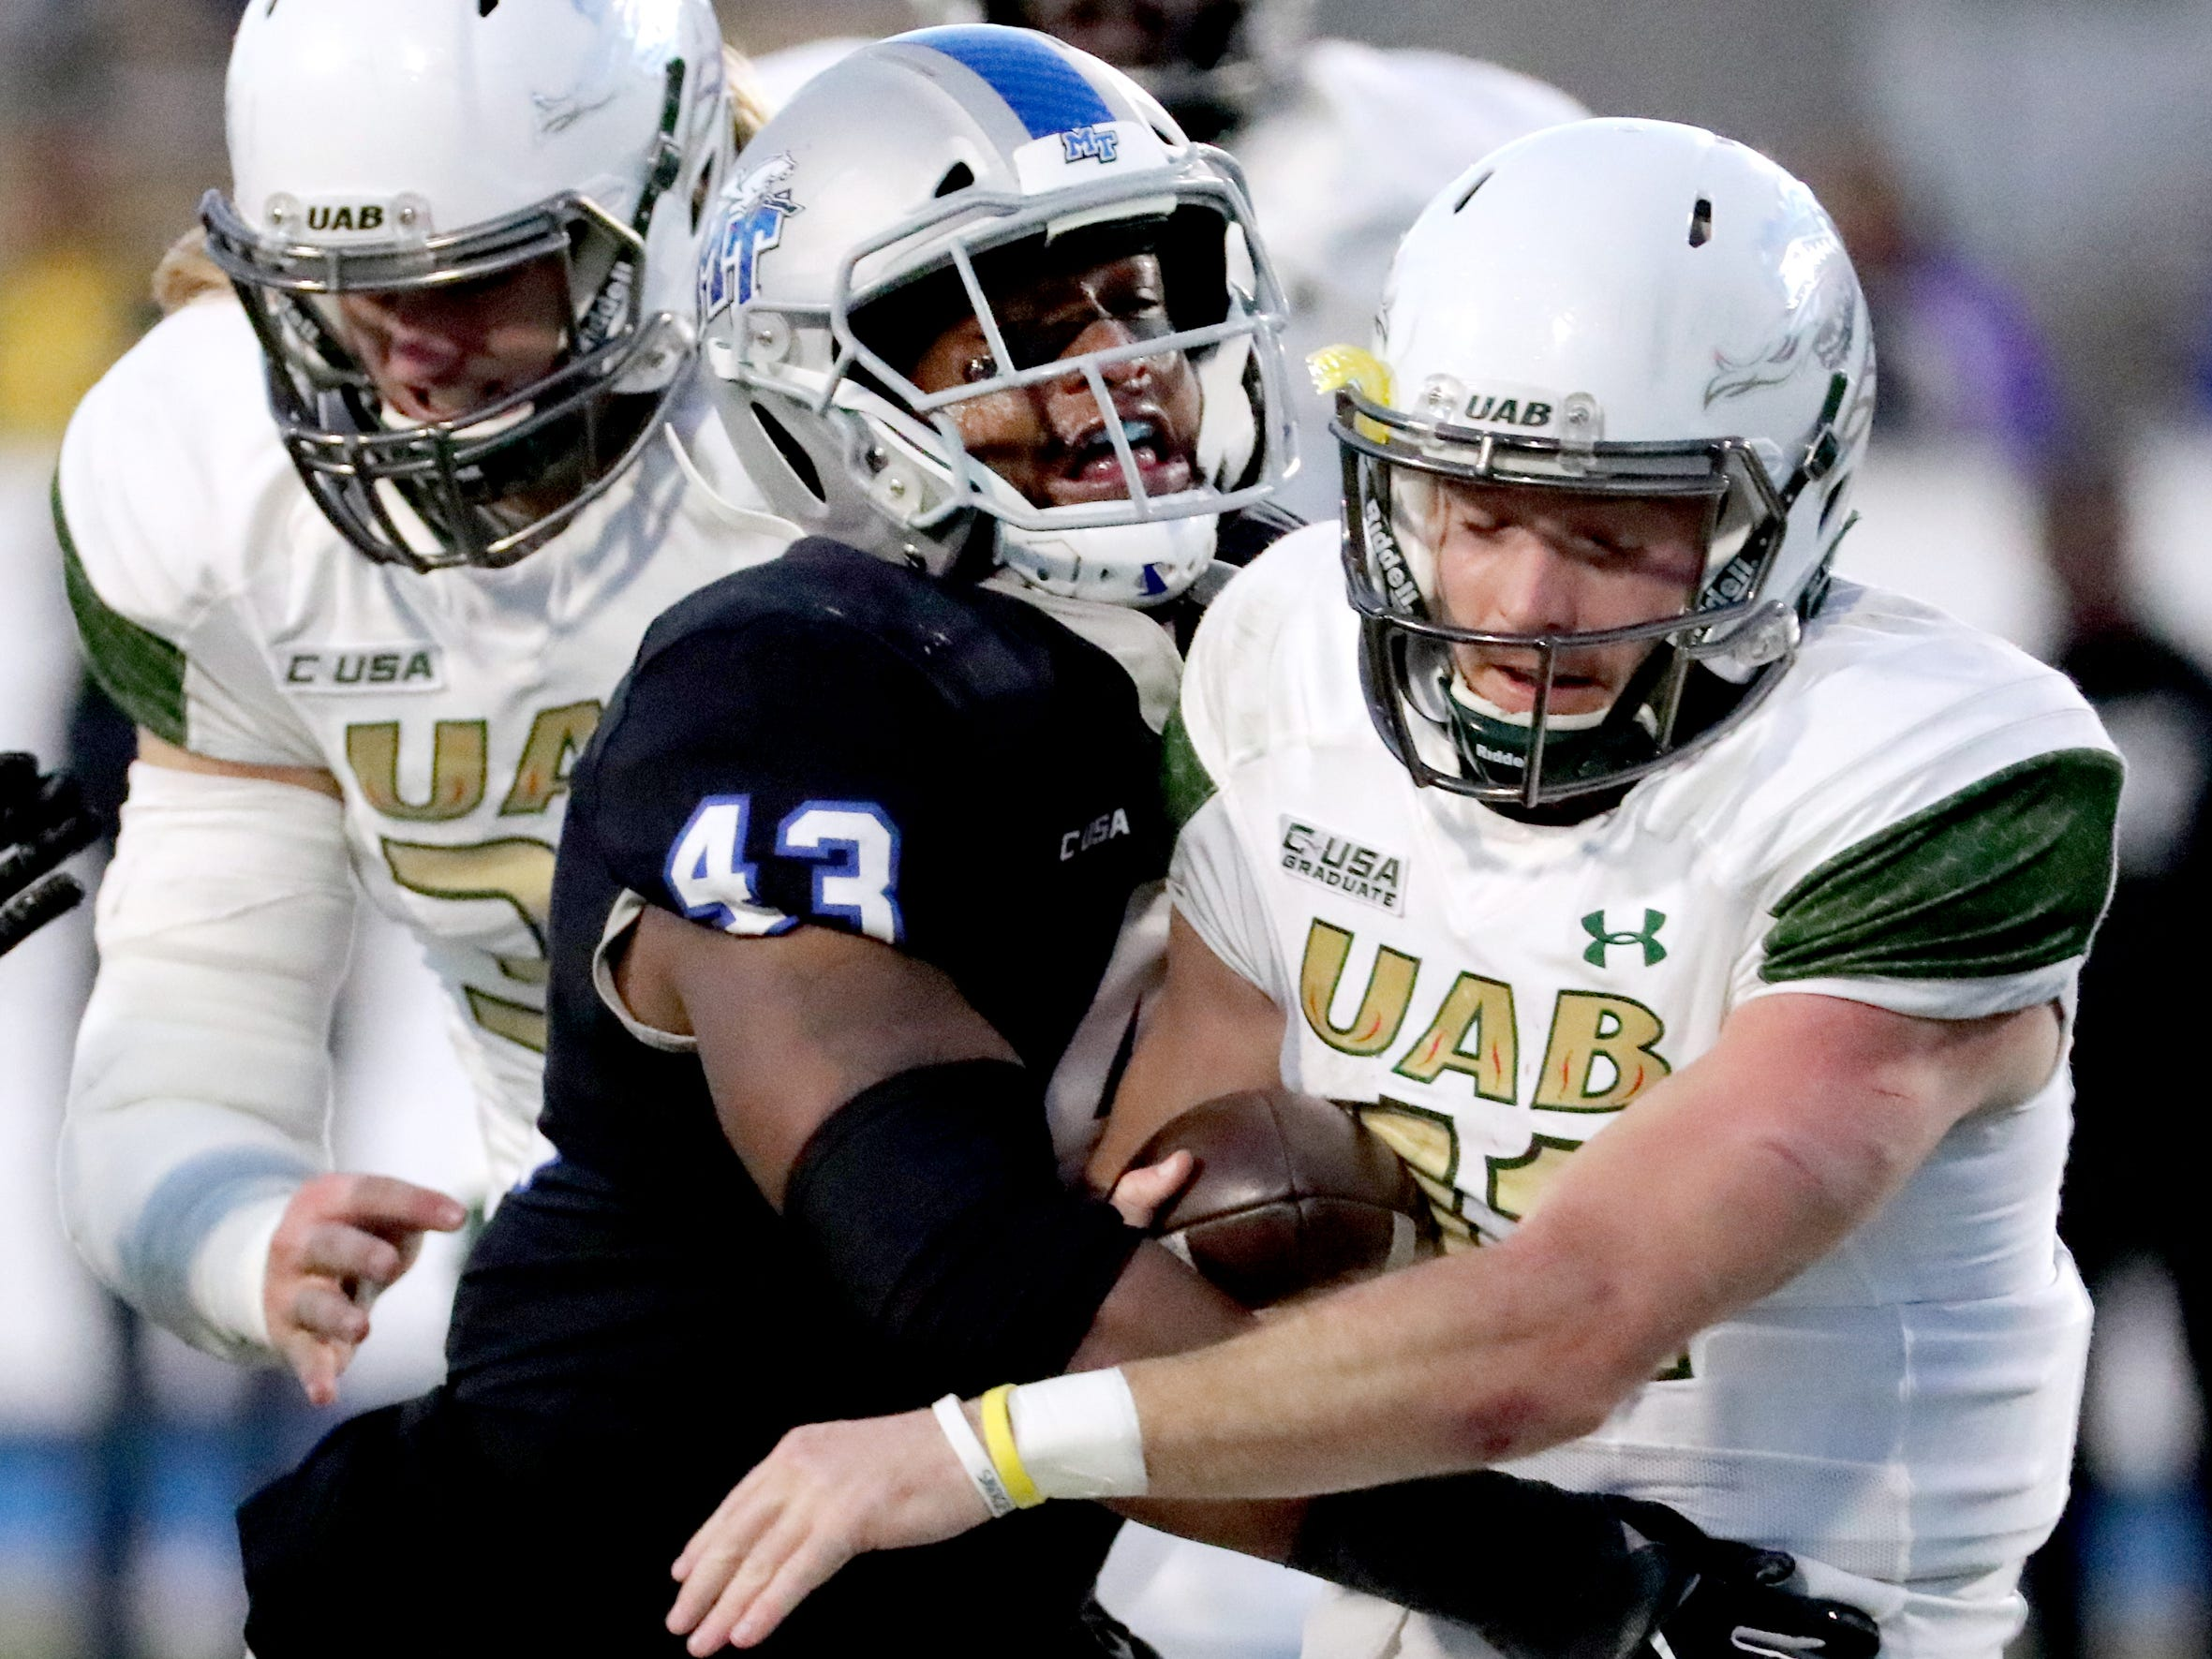 MTSU's Jahmal Jones (43) sacks UAB's quarterback AJ Erdely (11) during the game at MTSU on Saturday, Nov. 24, 2018.